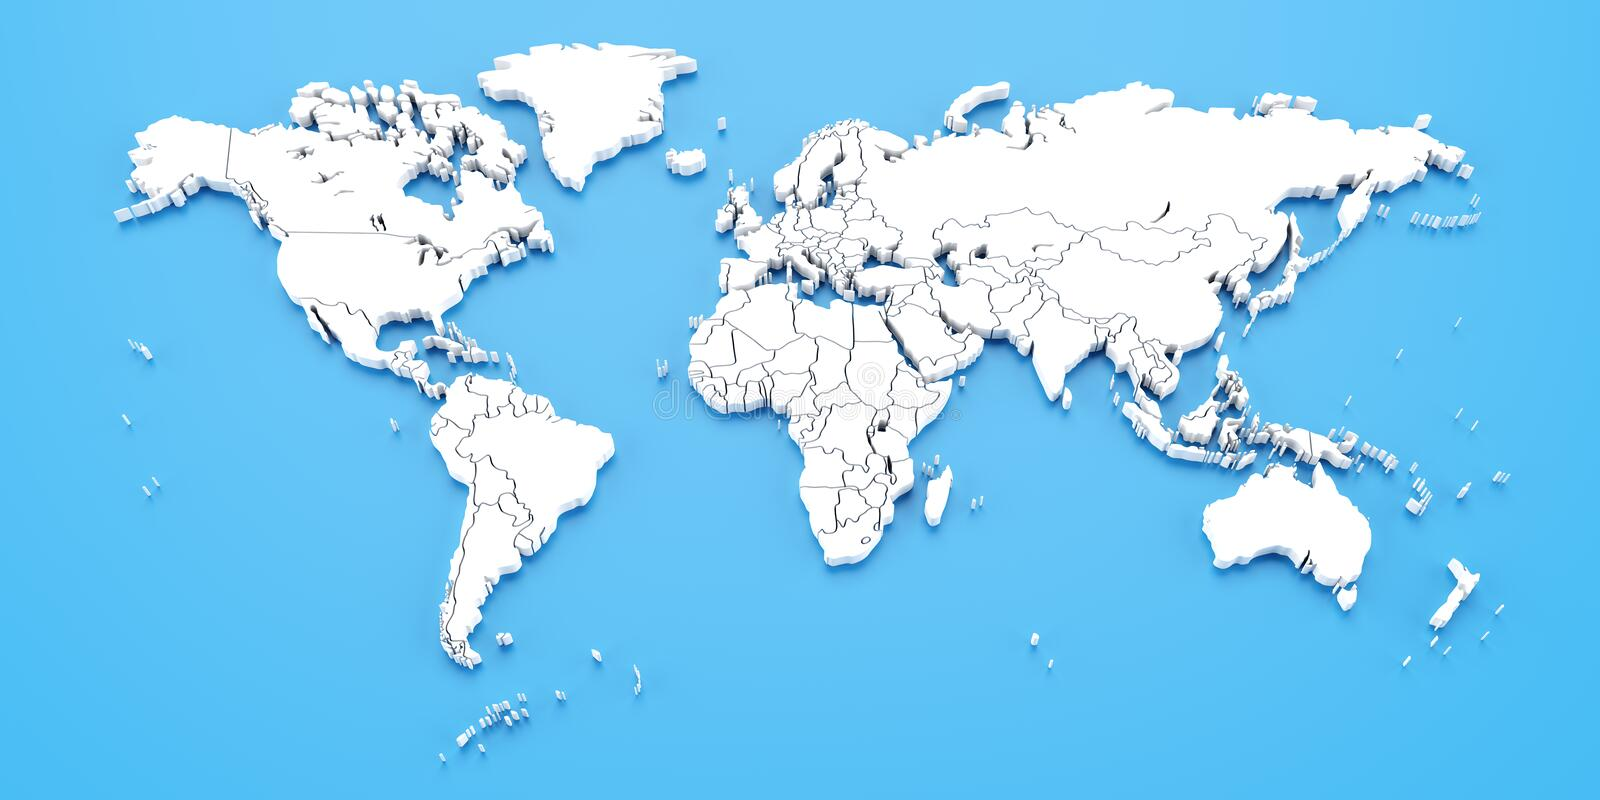 Detail world map with national borders 3d render stock illustration download detail world map with national borders 3d render stock illustration illustration of world gumiabroncs Image collections